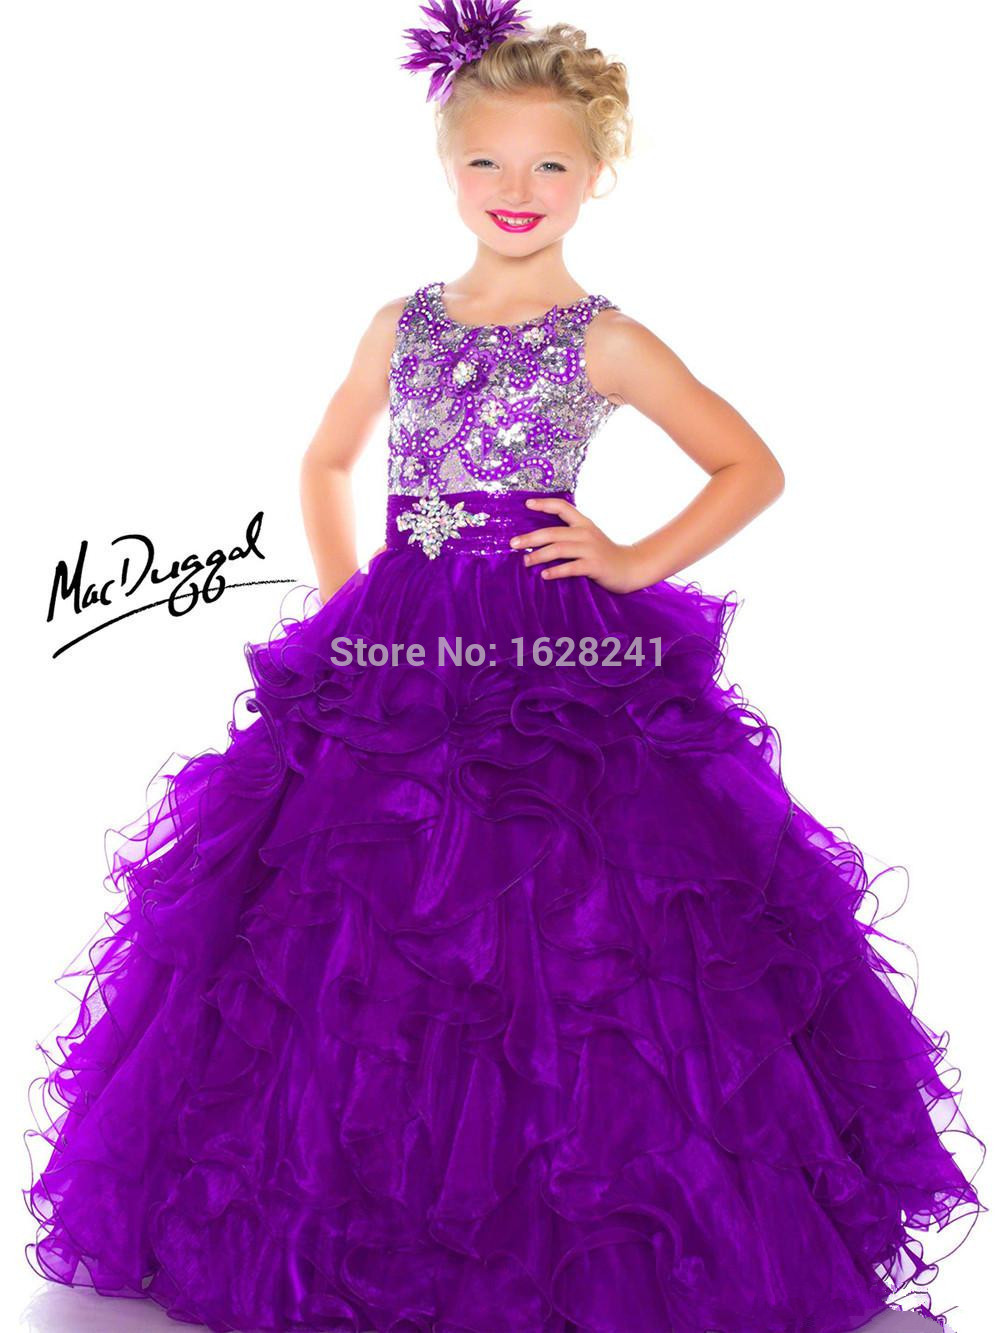 Online Get Cheap Teen Girls Pageant Dresses -Aliexpress.com ...